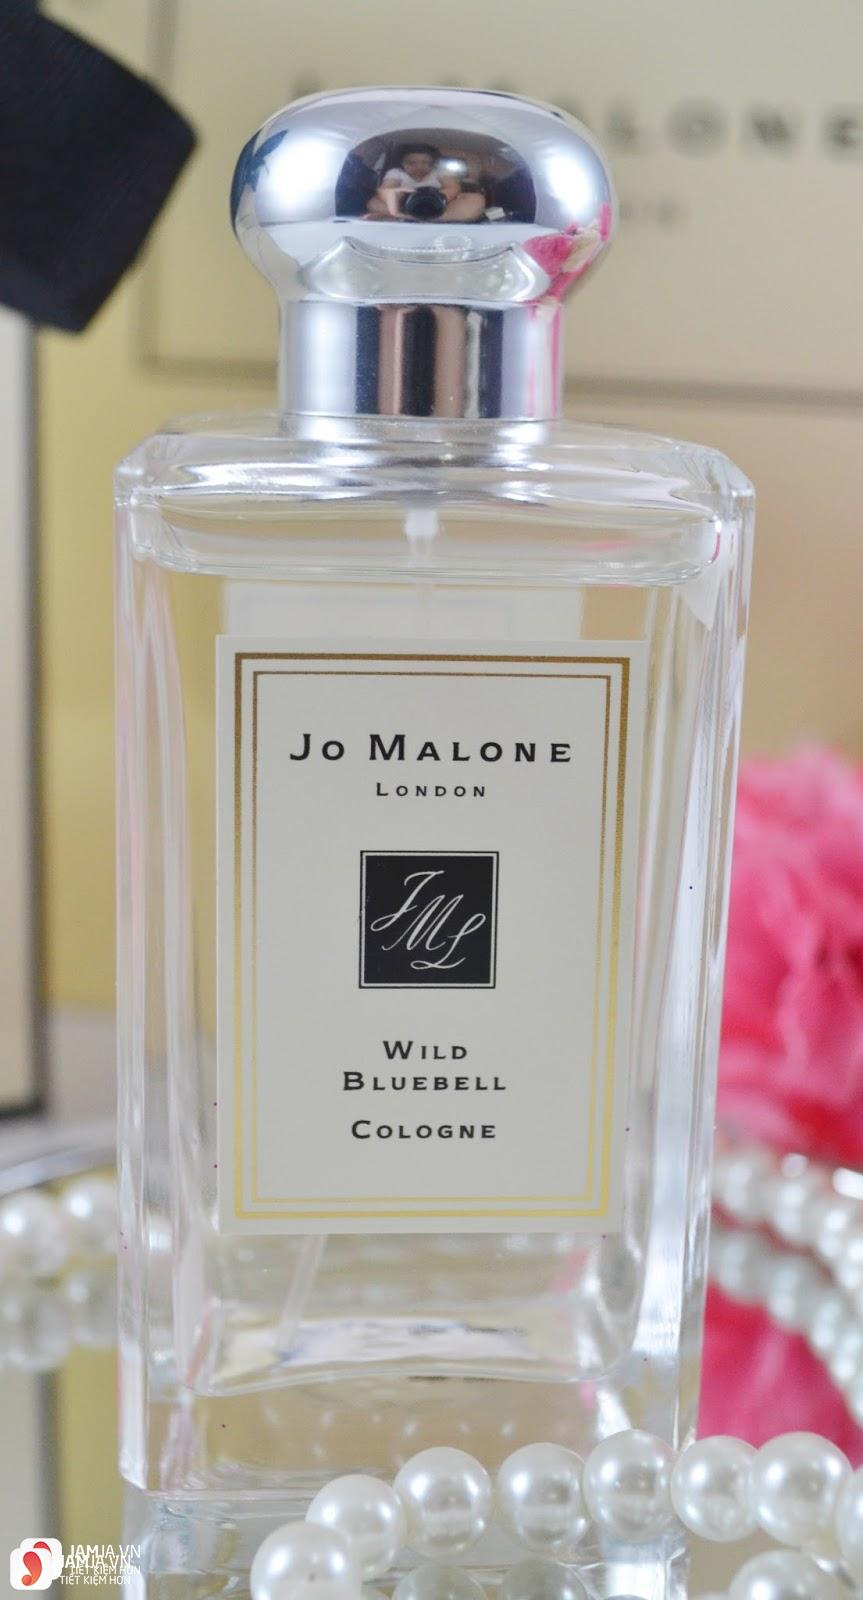 Review chi tiết nước hoaJo Malone Wild Bluebell 2